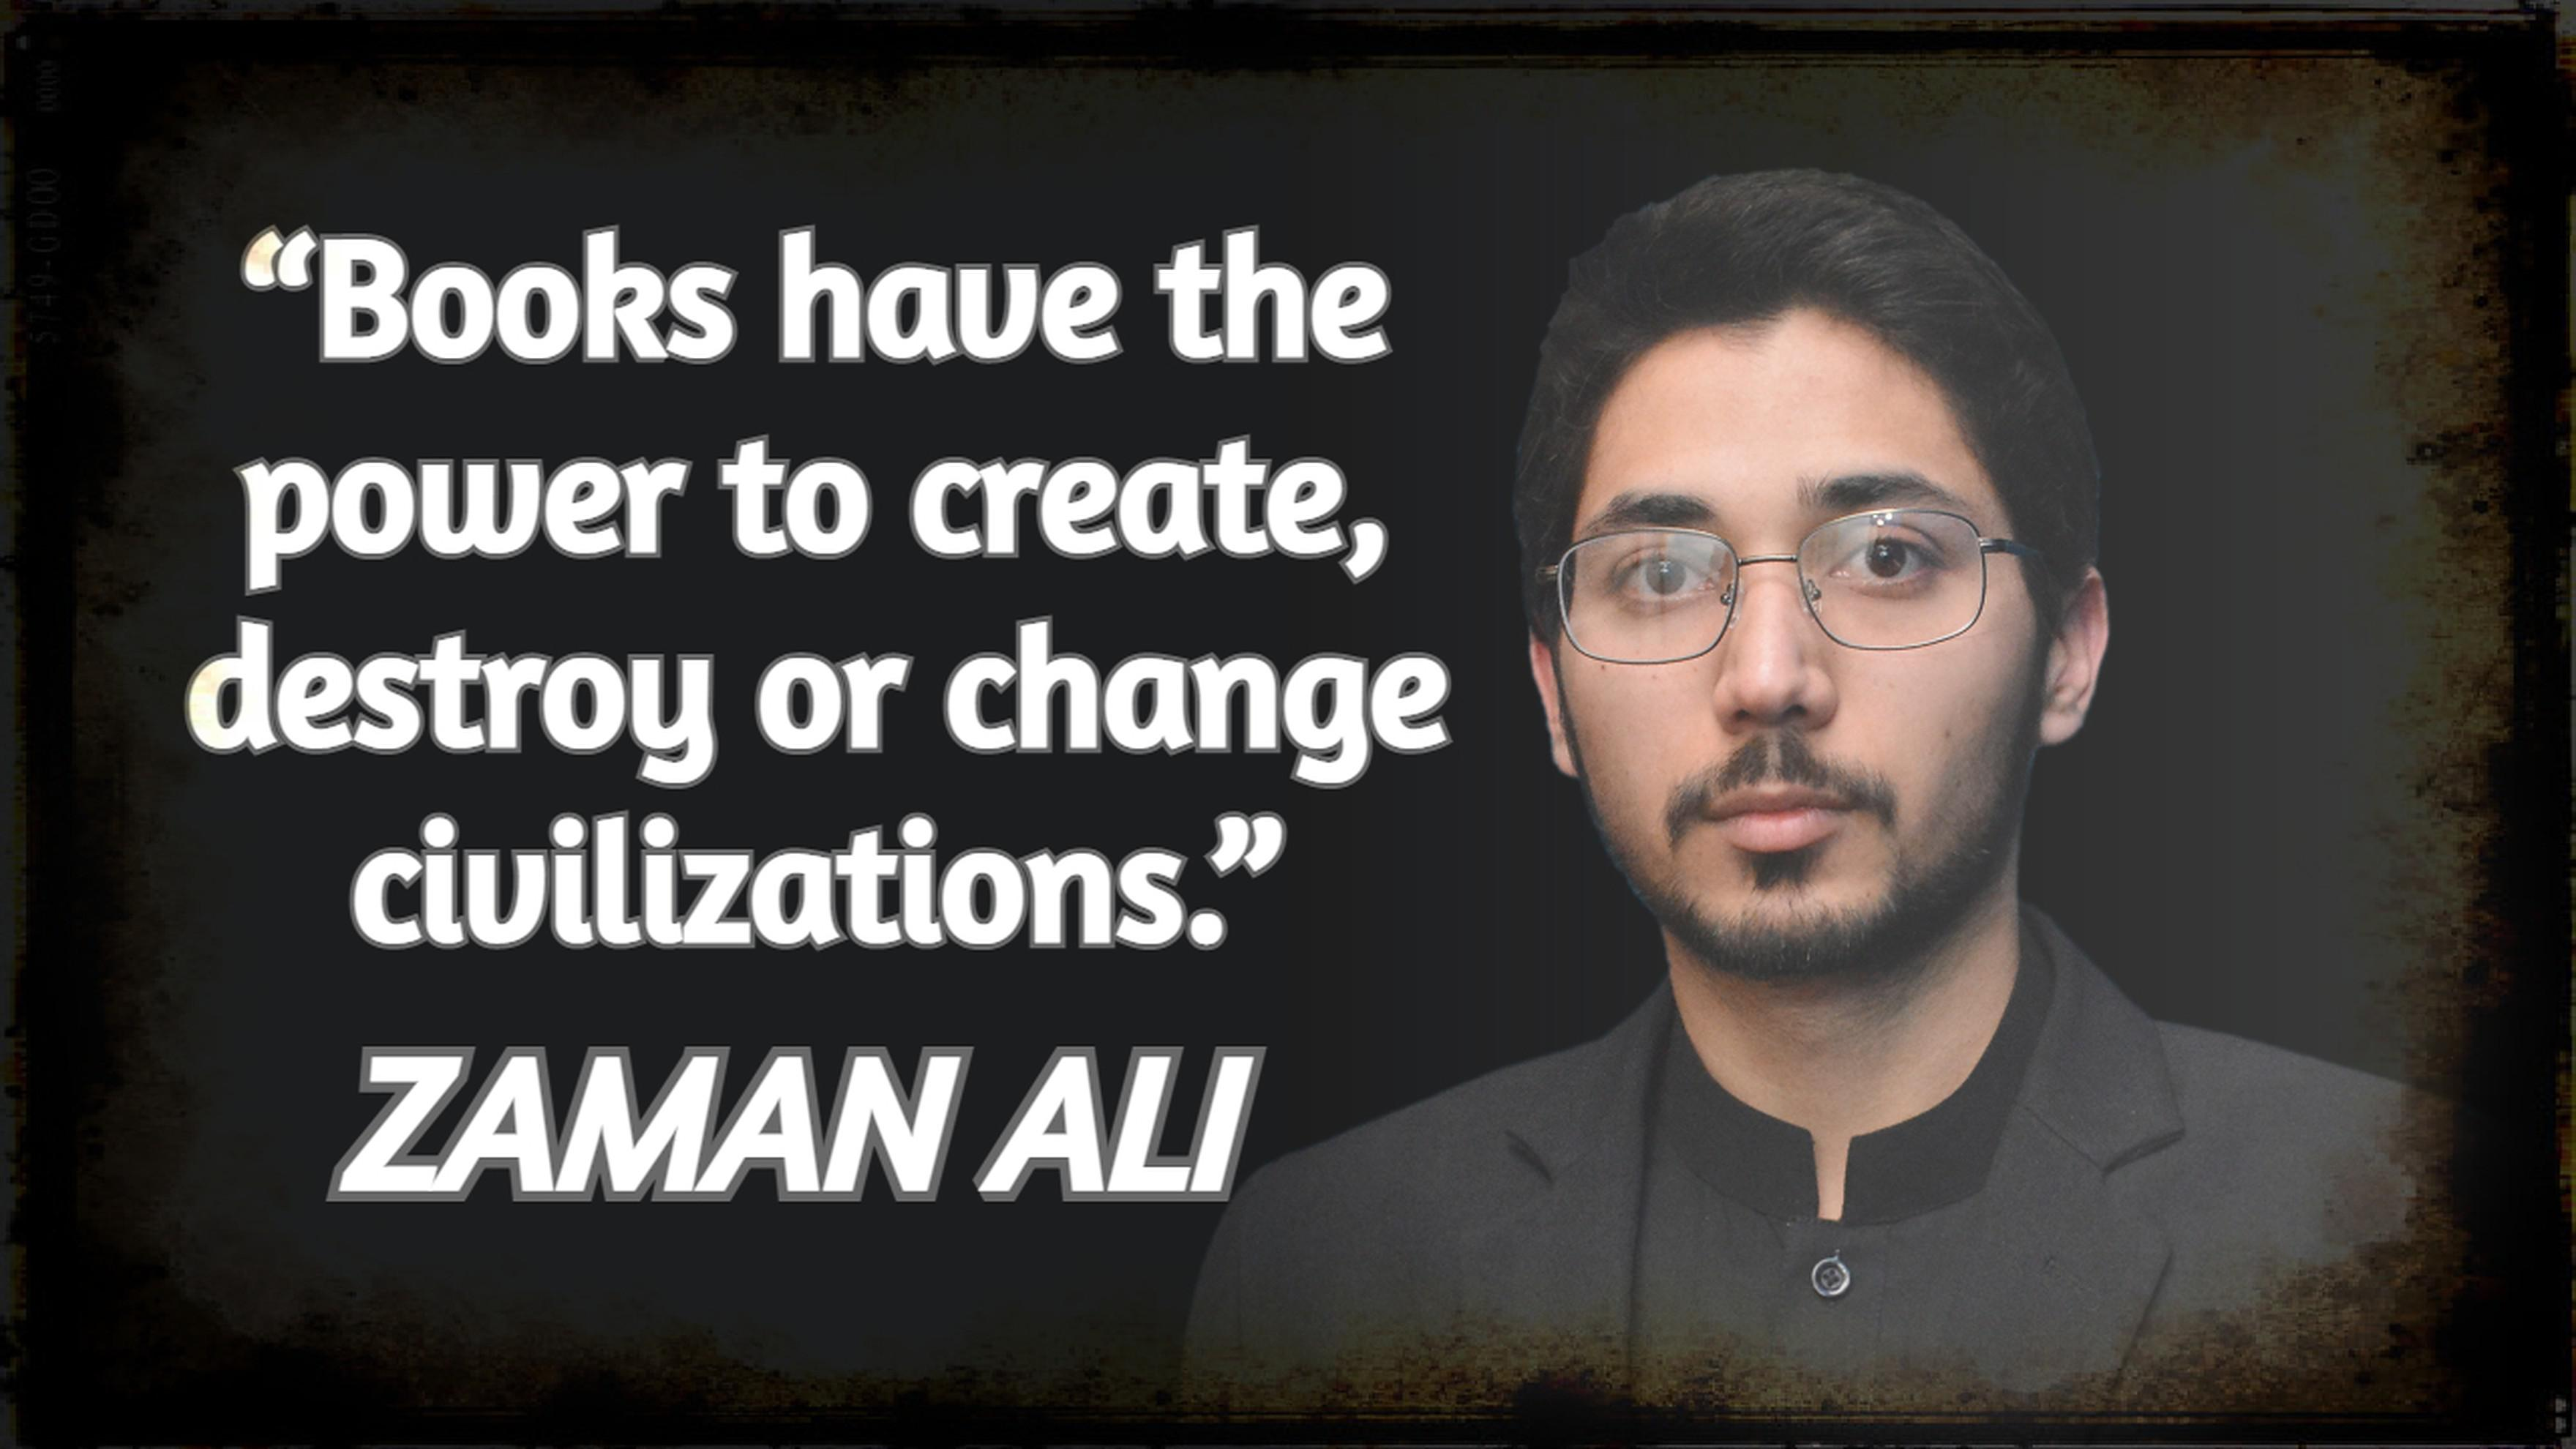 """Books have the power to create, destroy or change civilizations."" ― Zaman Ali [3520 x 1980]"